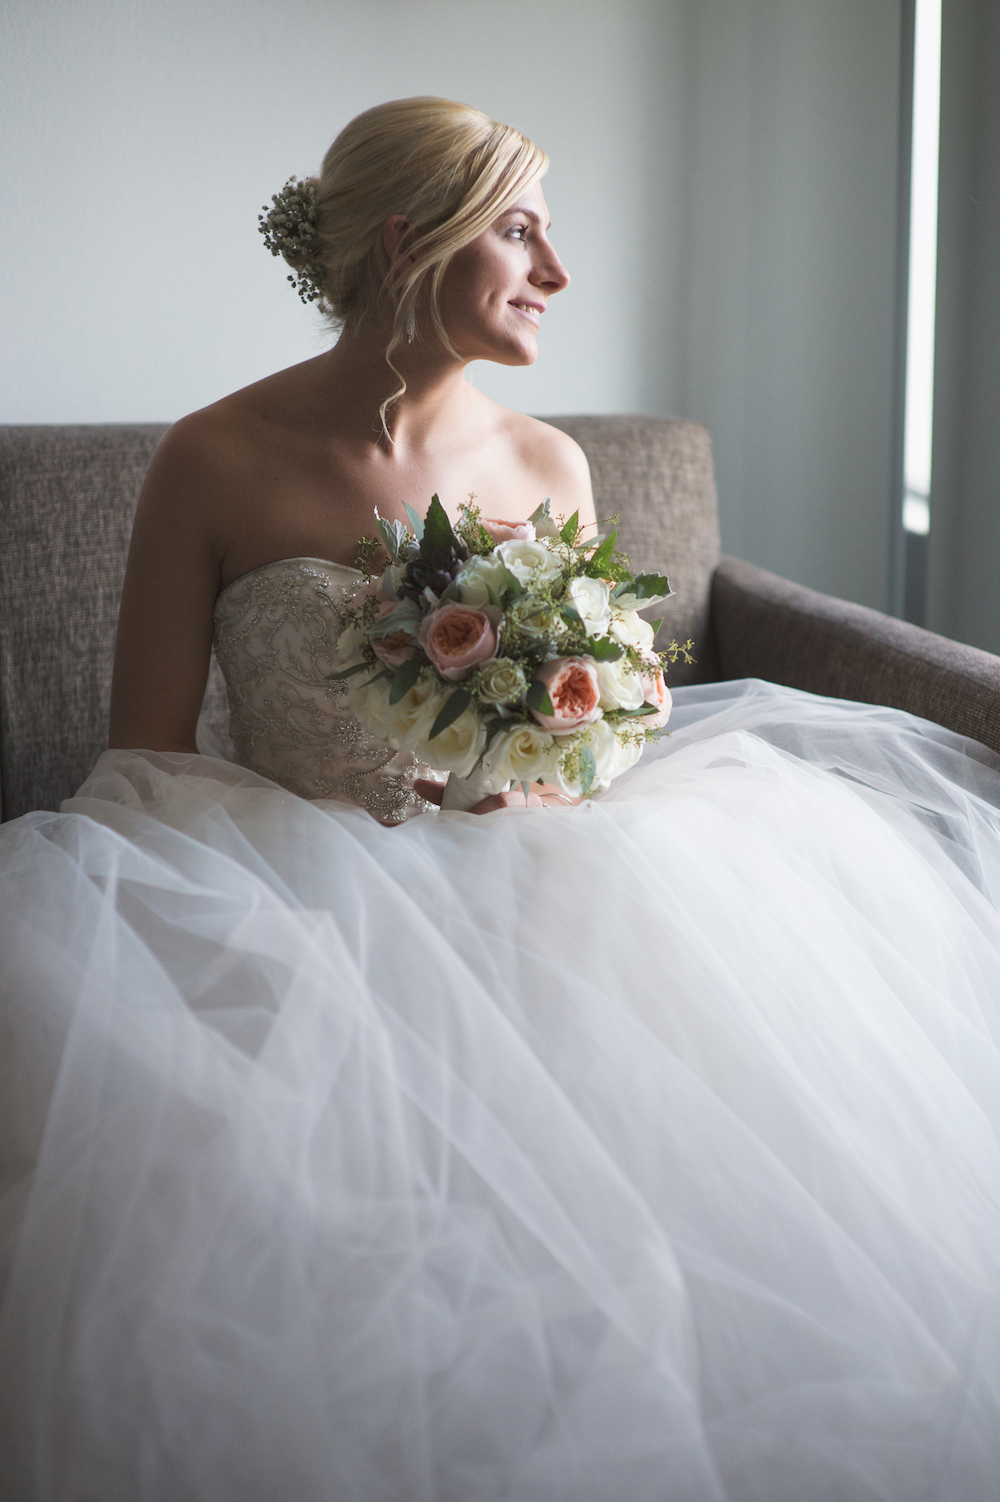 laura-in-dress-with-bouquet-looking-out-window-wedding-photos-nj